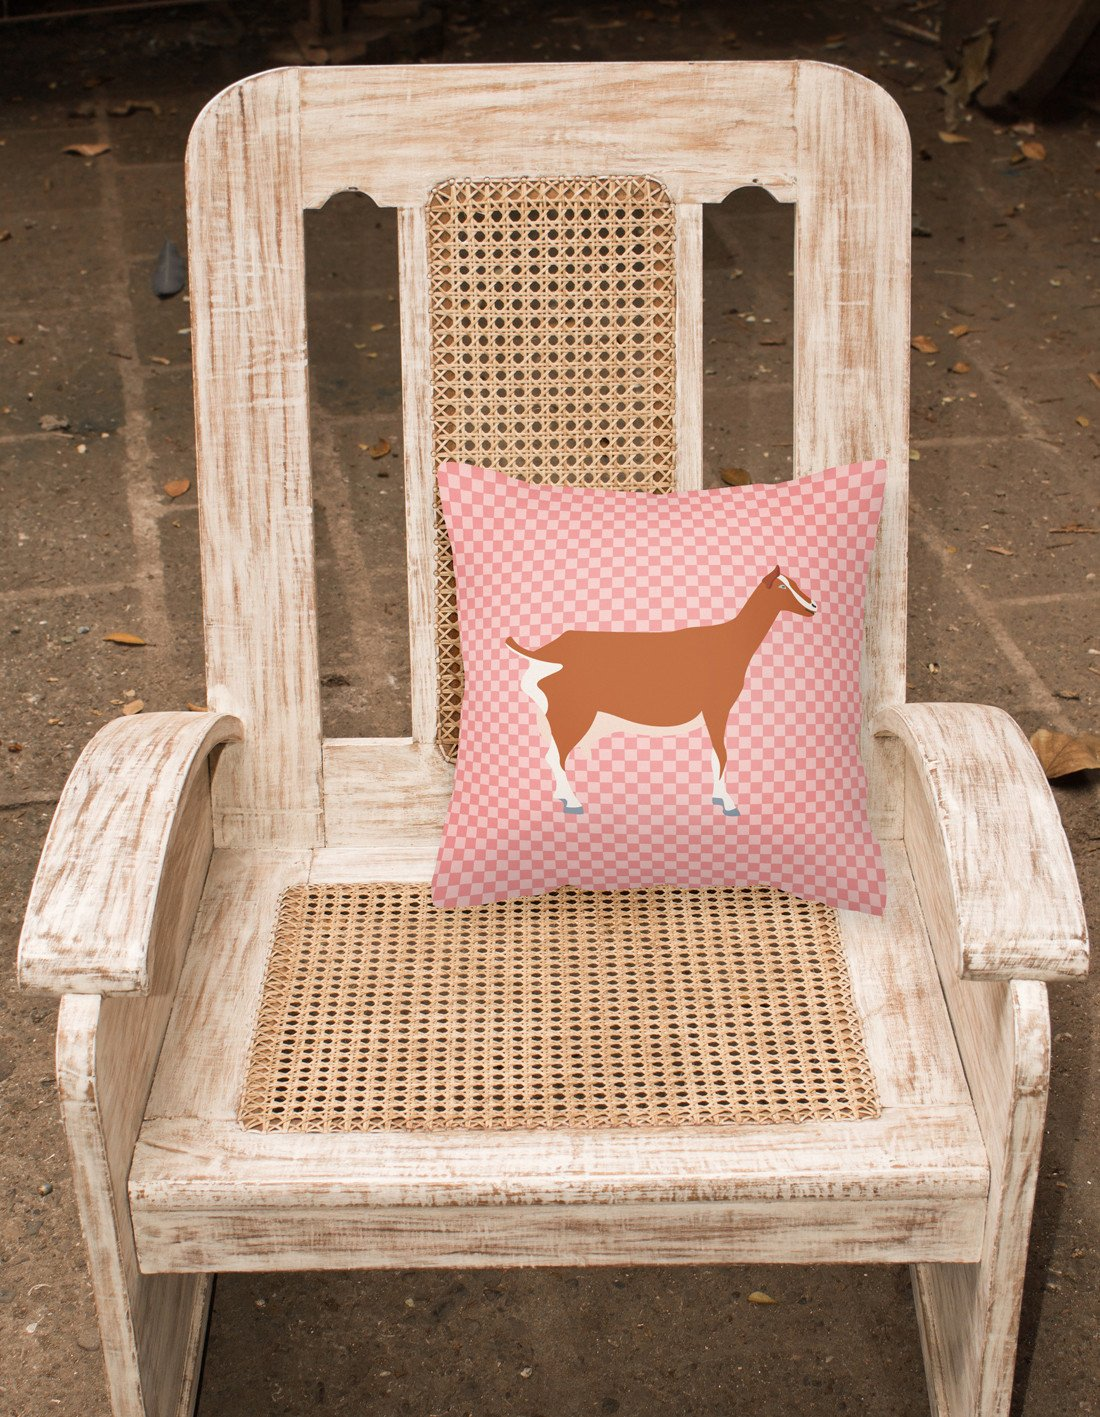 Toggenburger Goat Pink Check Fabric Decorative Pillow BB7881PW1818 by Caroline's Treasures